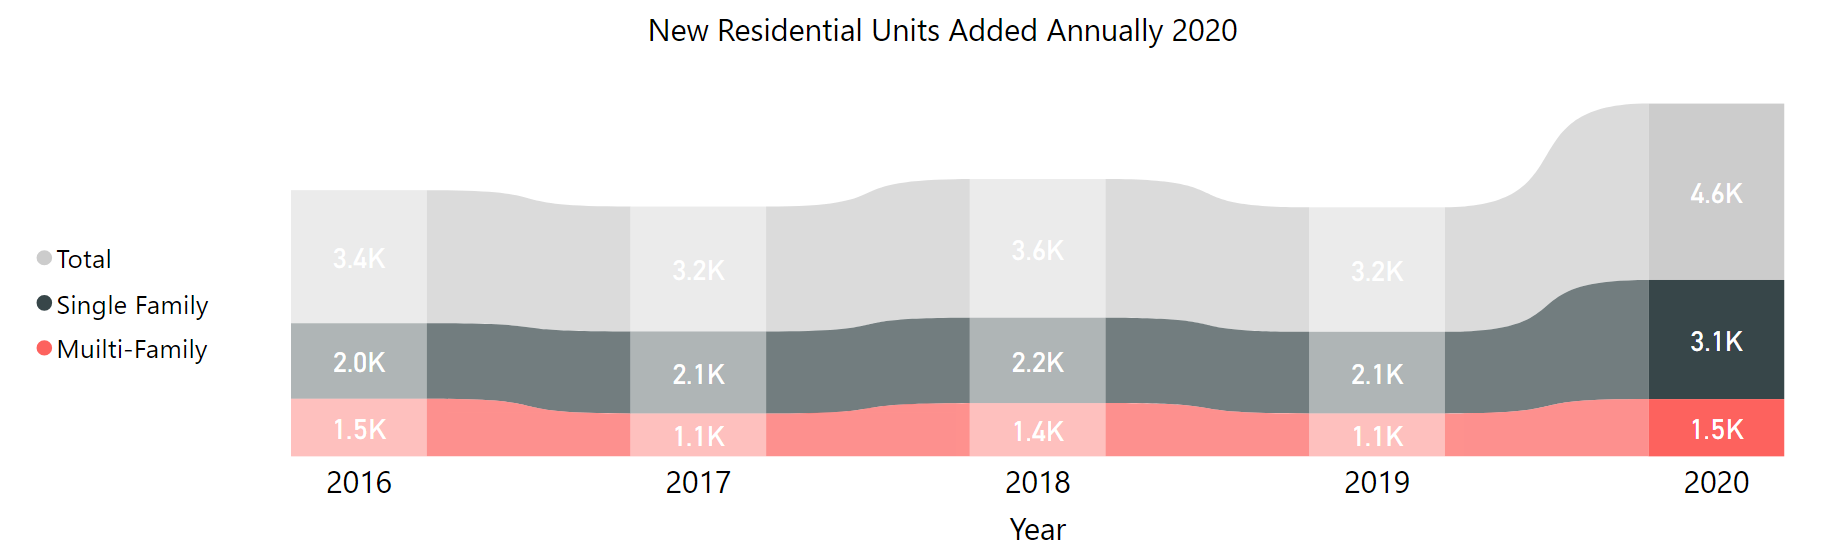 Graph of new residential units added from 2016 to 2020. The rate stayed relatively consistent from 2016 to 2019 and then went up in 2020.